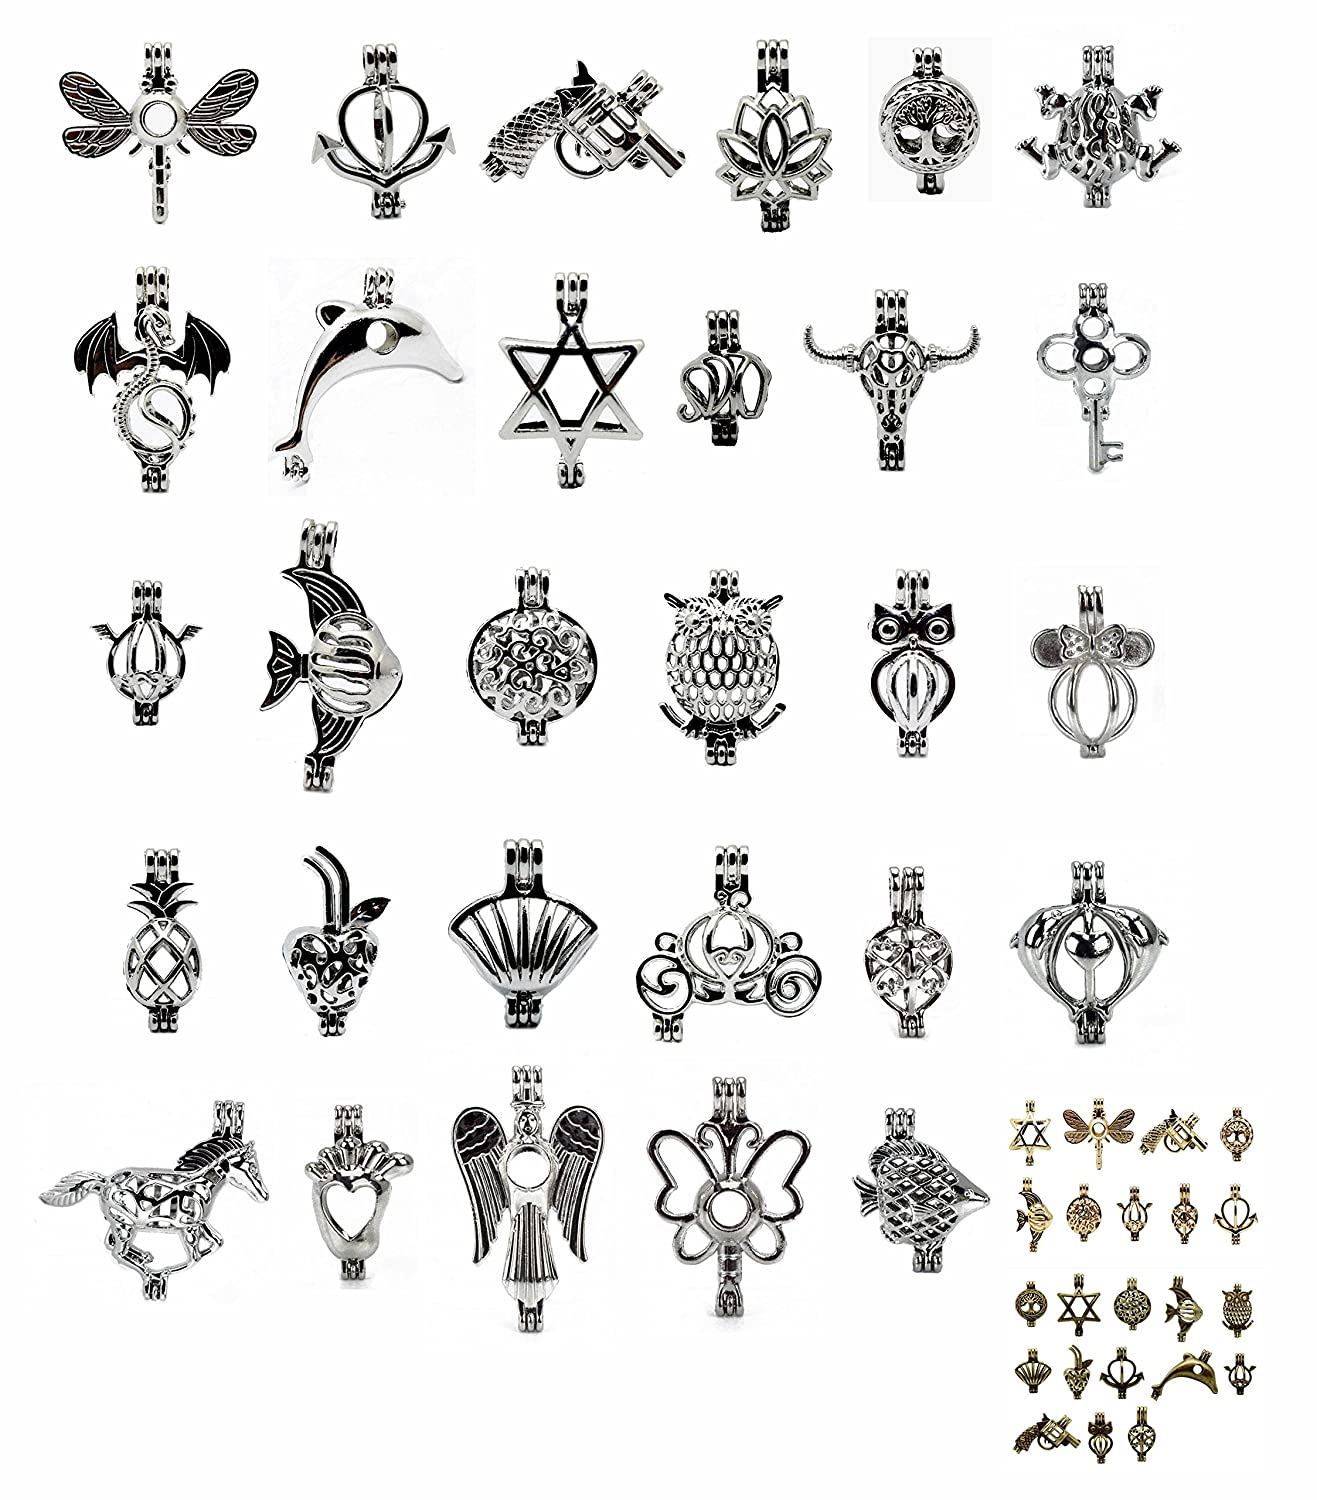 10PCS Mix Jewelry Making Supplies Silver Gold Plated Bead Cage Pendant - Add Your Own Pearls, Stones, Rock to Cage,Add Perfume Essential Oils to Create a Scent Diffusing Pendant Charms … DAYONE JEWELRY LTD 1017SOWZQJQ